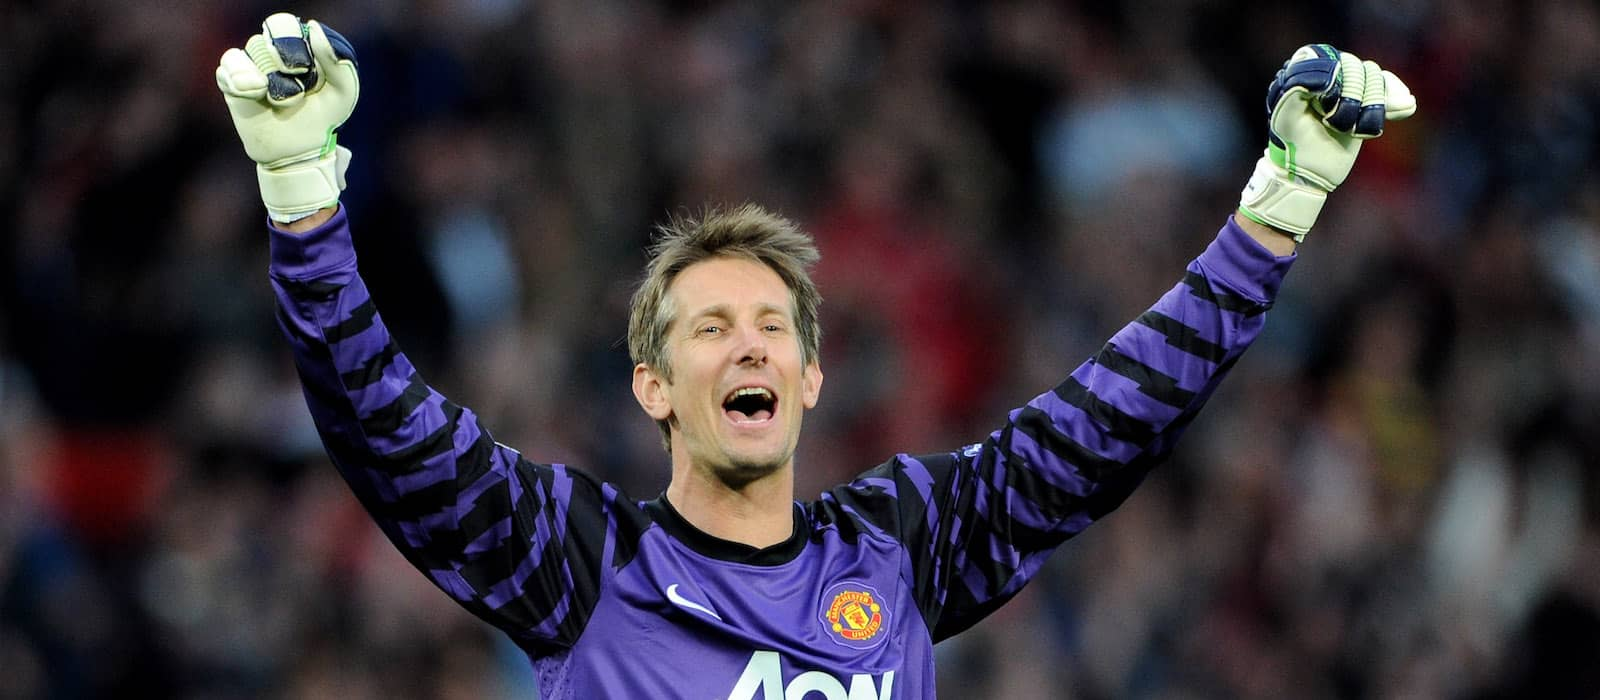 Edwin van der Sar could be set for Manchester United return